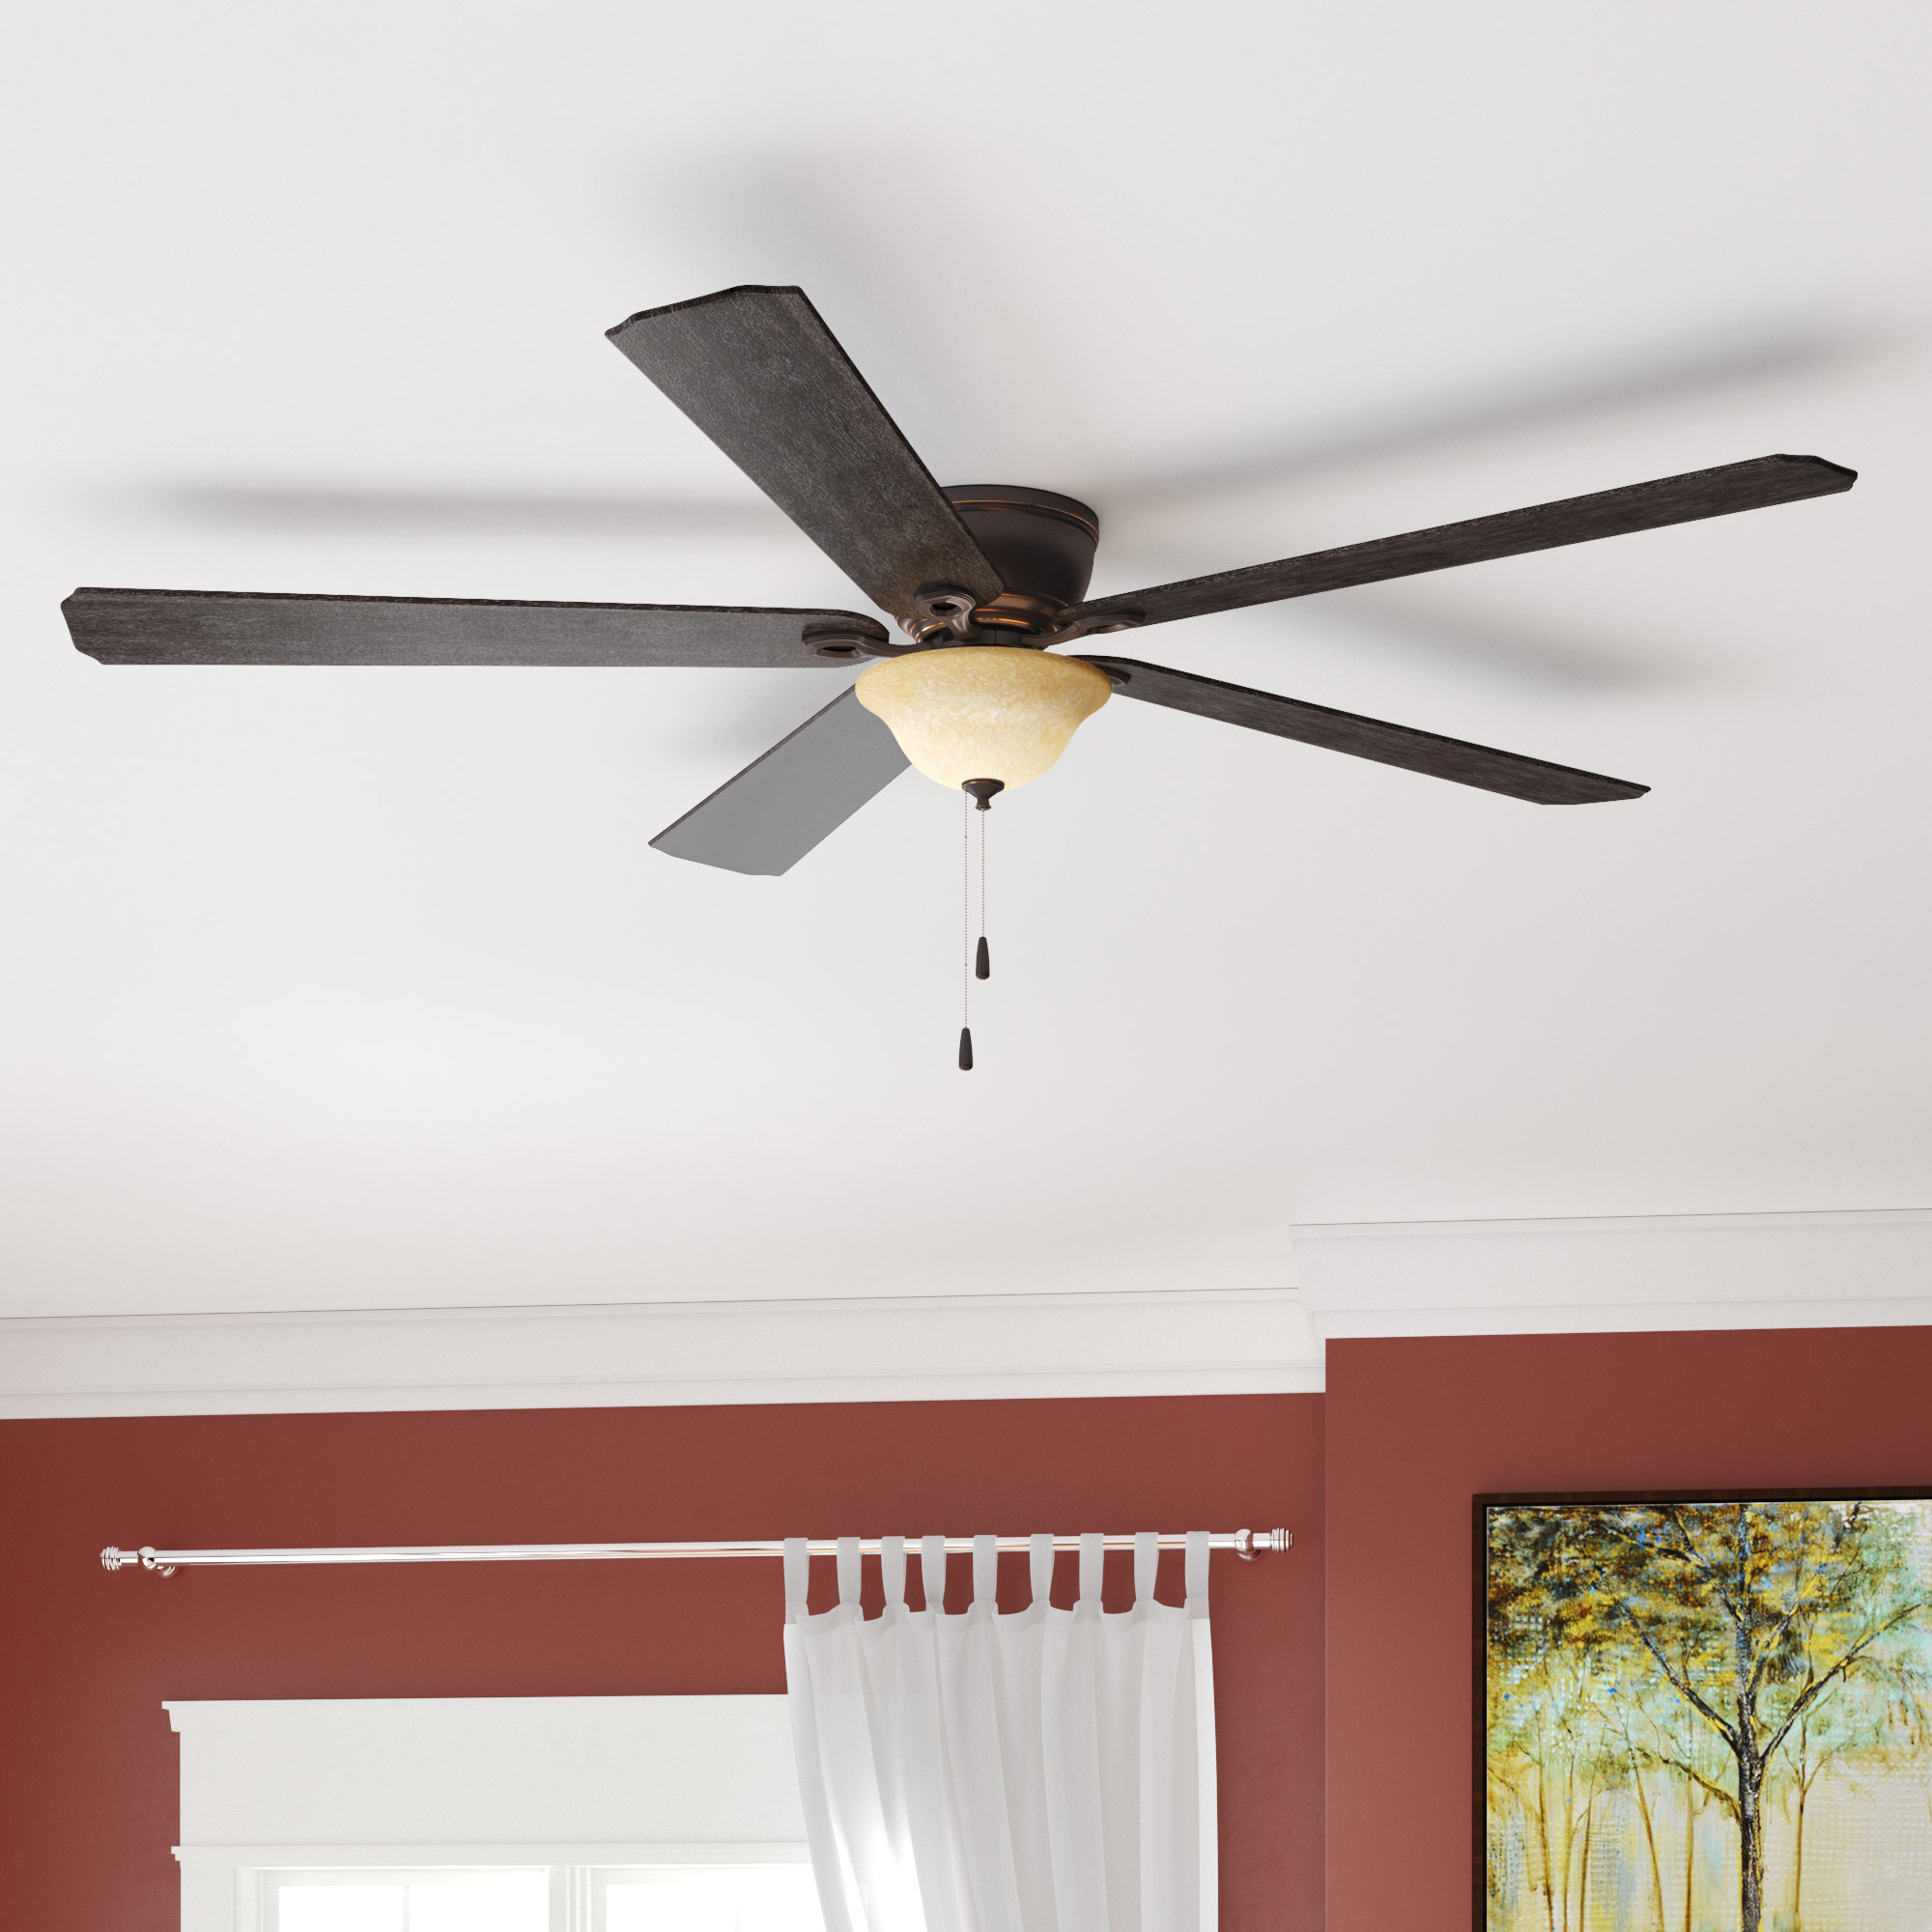 "52"" Crumbley 5 Blade Ceiling Fan, Light Kit Included Throughout Popular Crumbley 5 Blade Ceiling Fans (Gallery 1 of 20)"